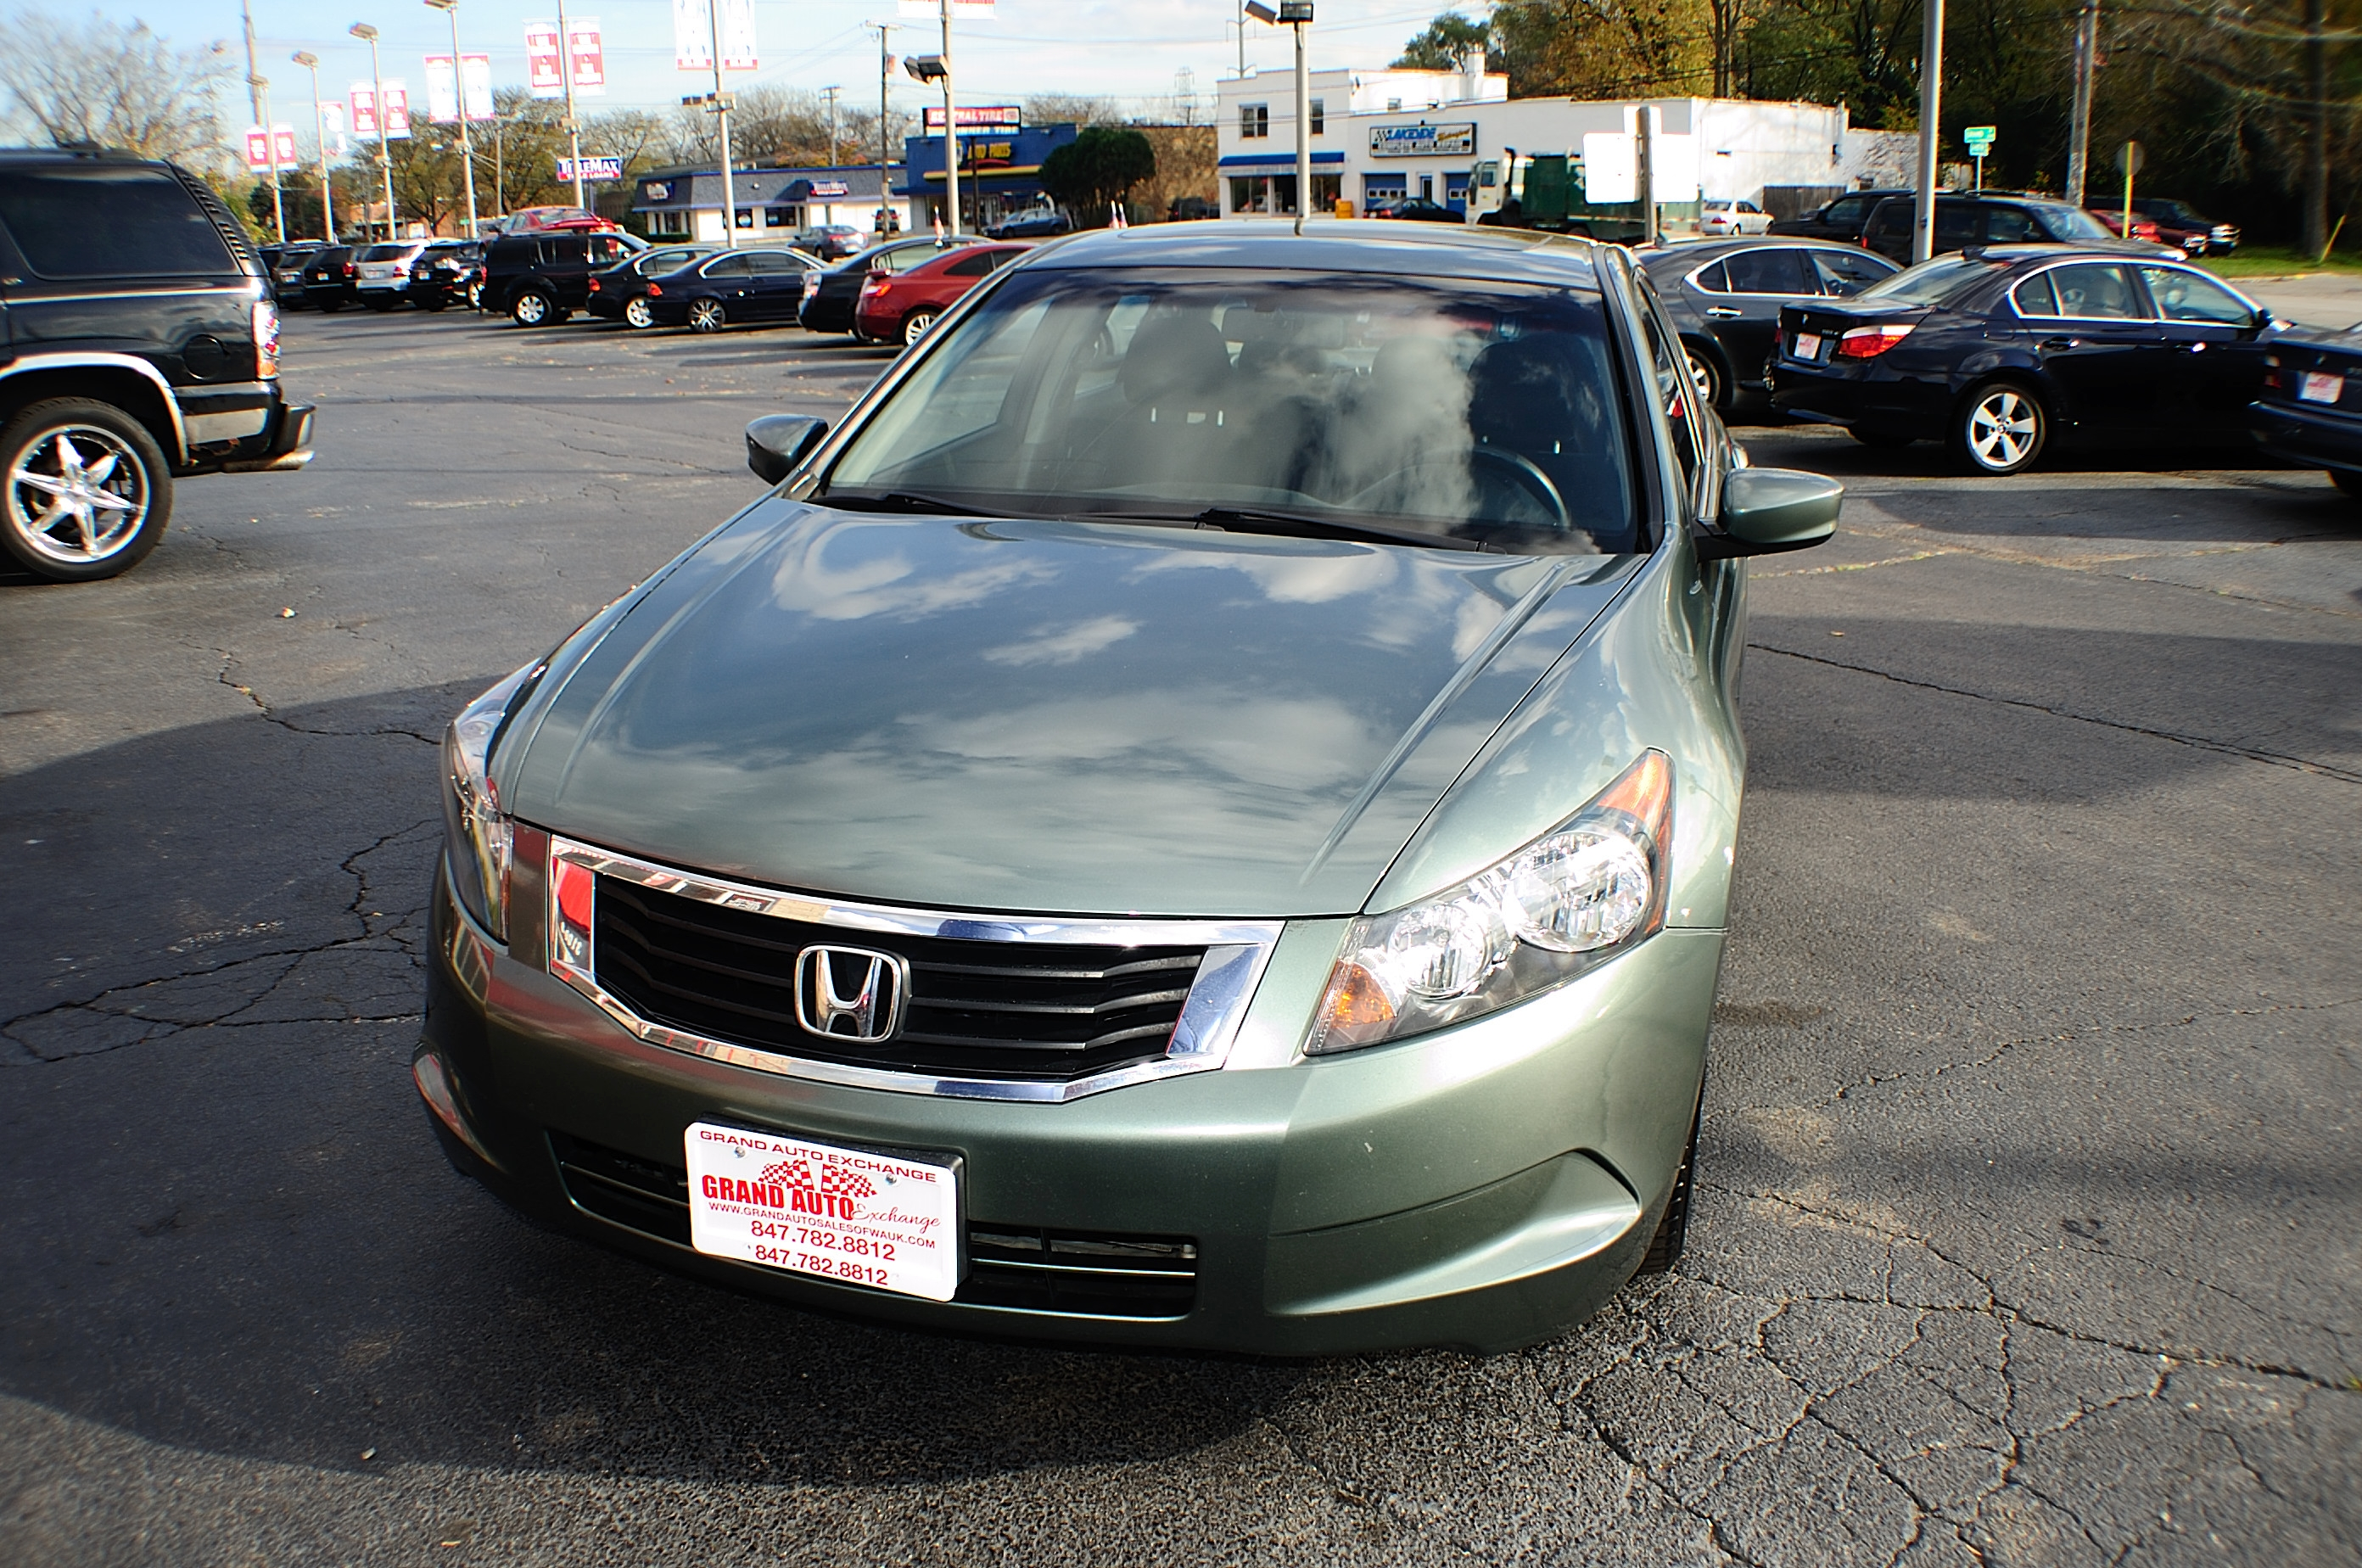 2008 Honda Accord EX Green Sport Sedan Used Car Sale Gurnee Kenosha Mchenry